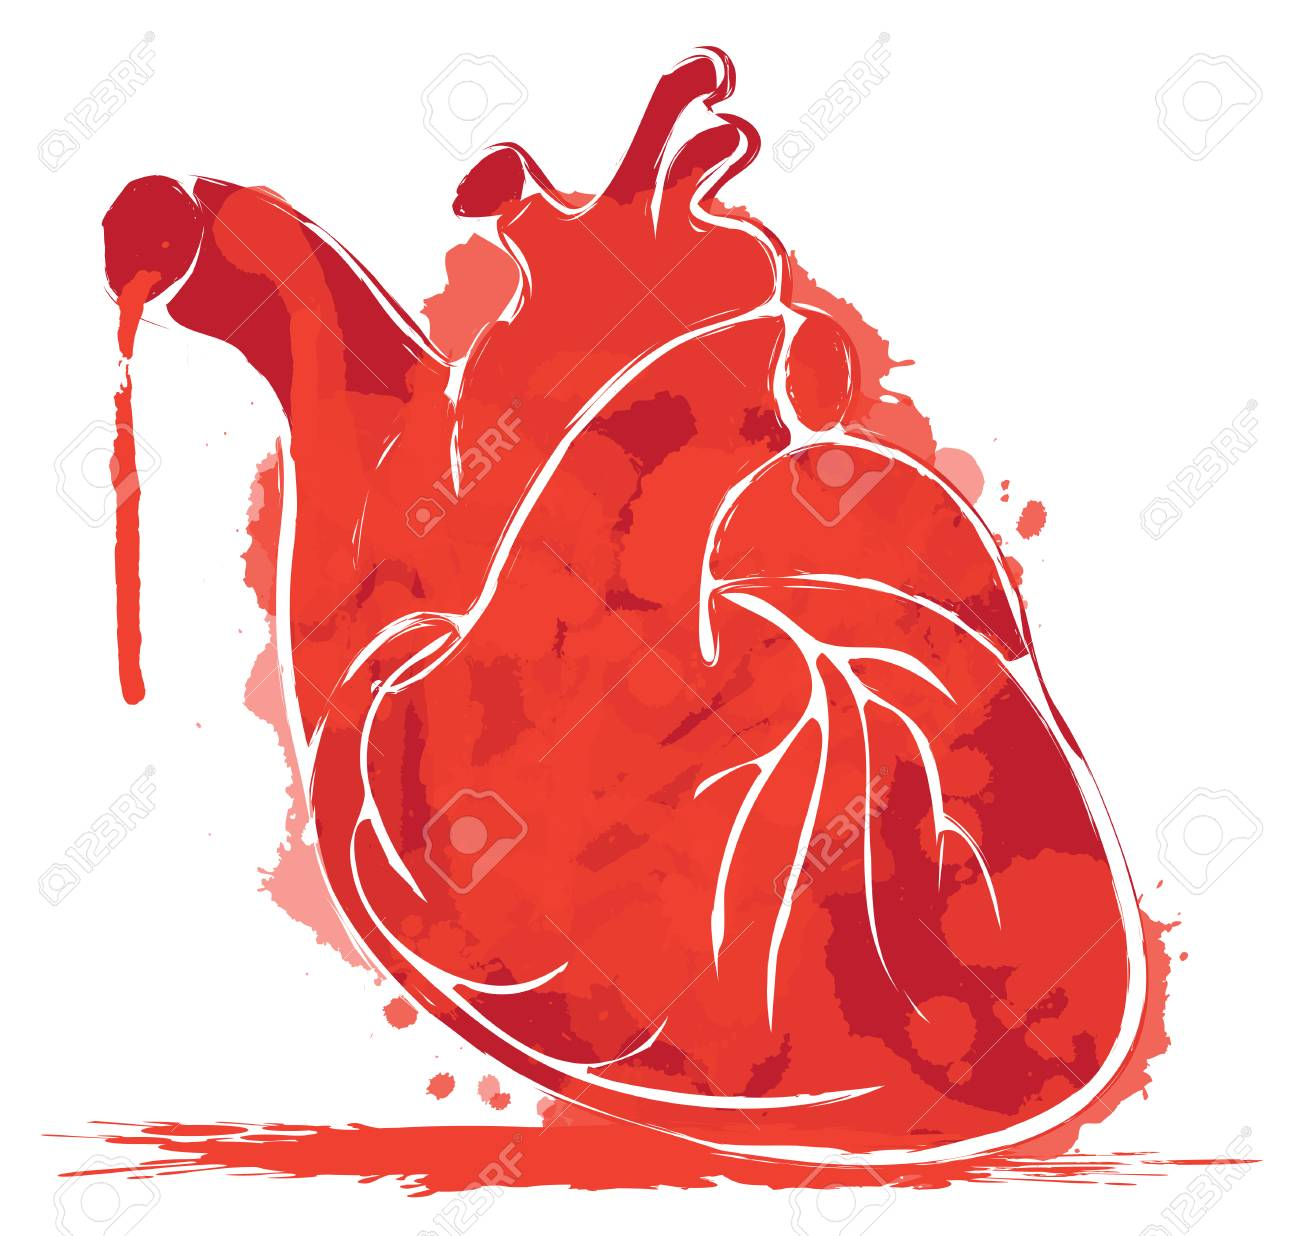 Vector Red Graphic Abstract Illustration Of Human Heart With